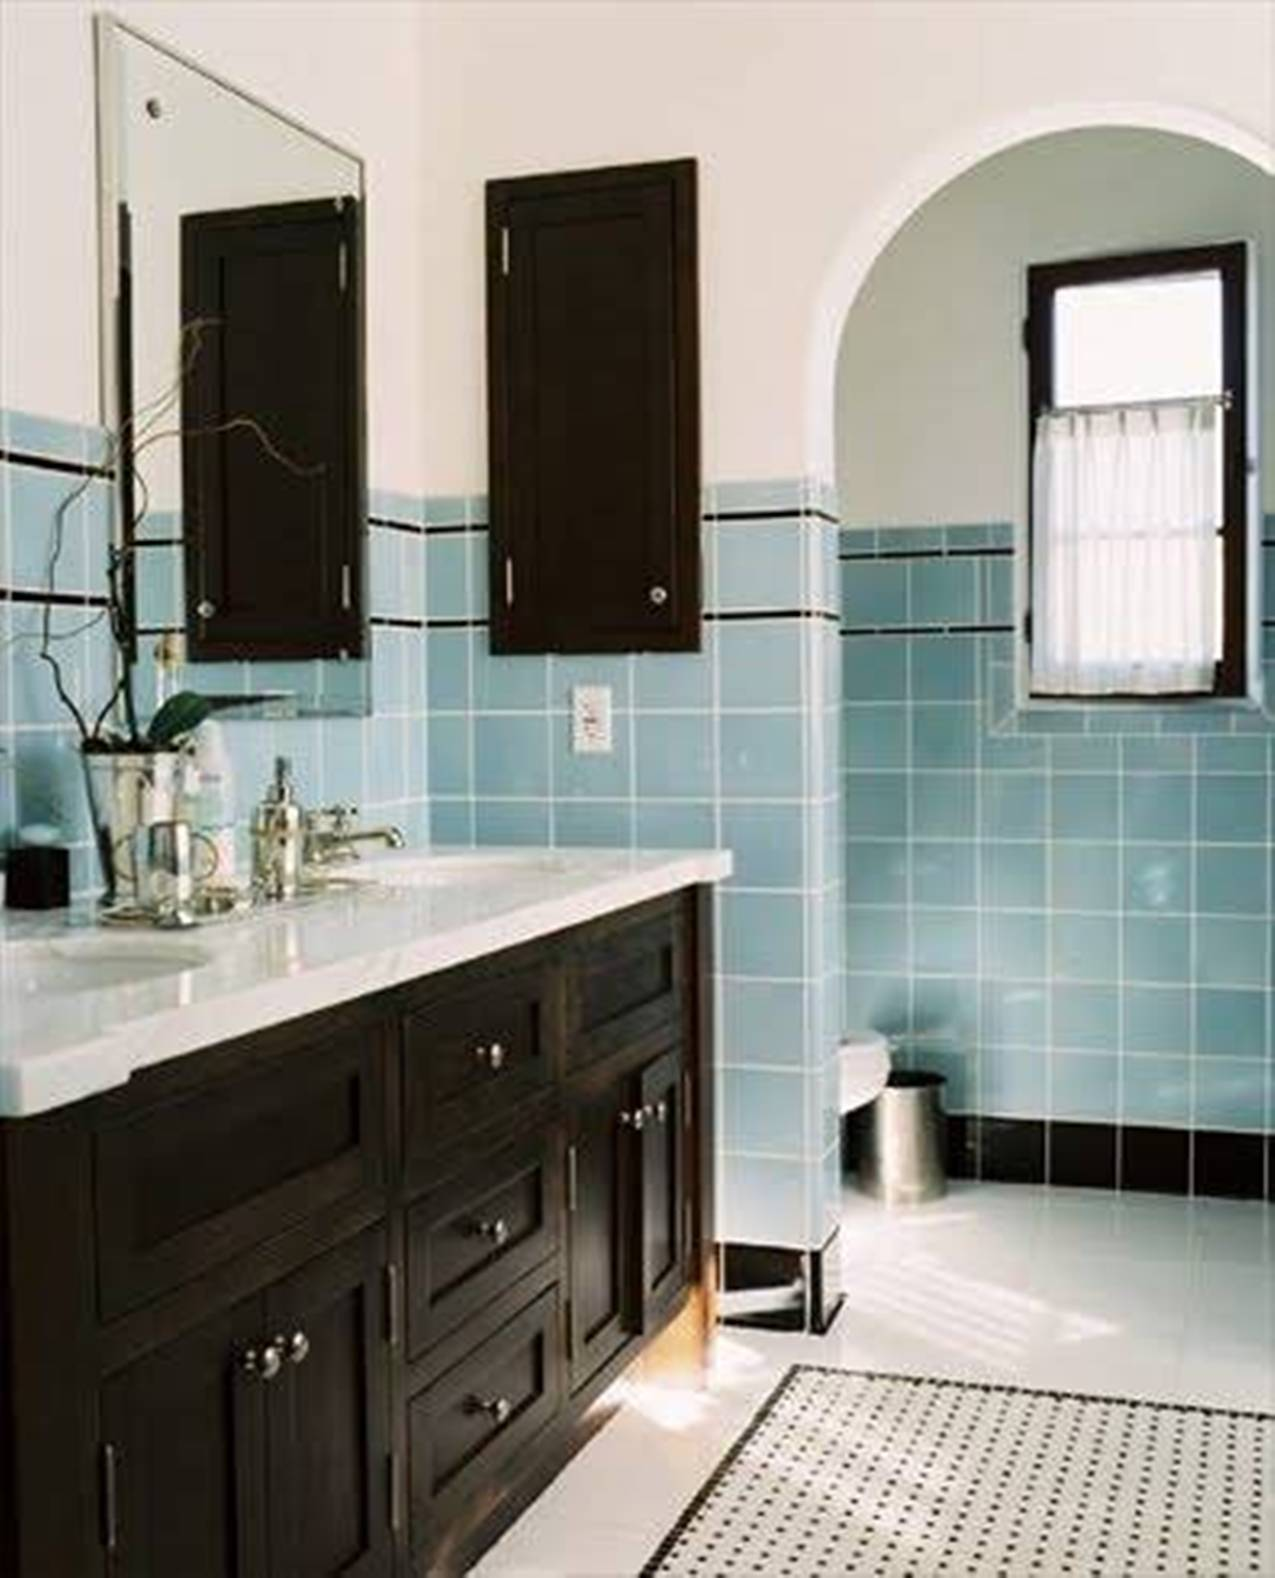 45 magnificent pictures of retro bathroom tile design ideas for Blue tile bathroom ideas